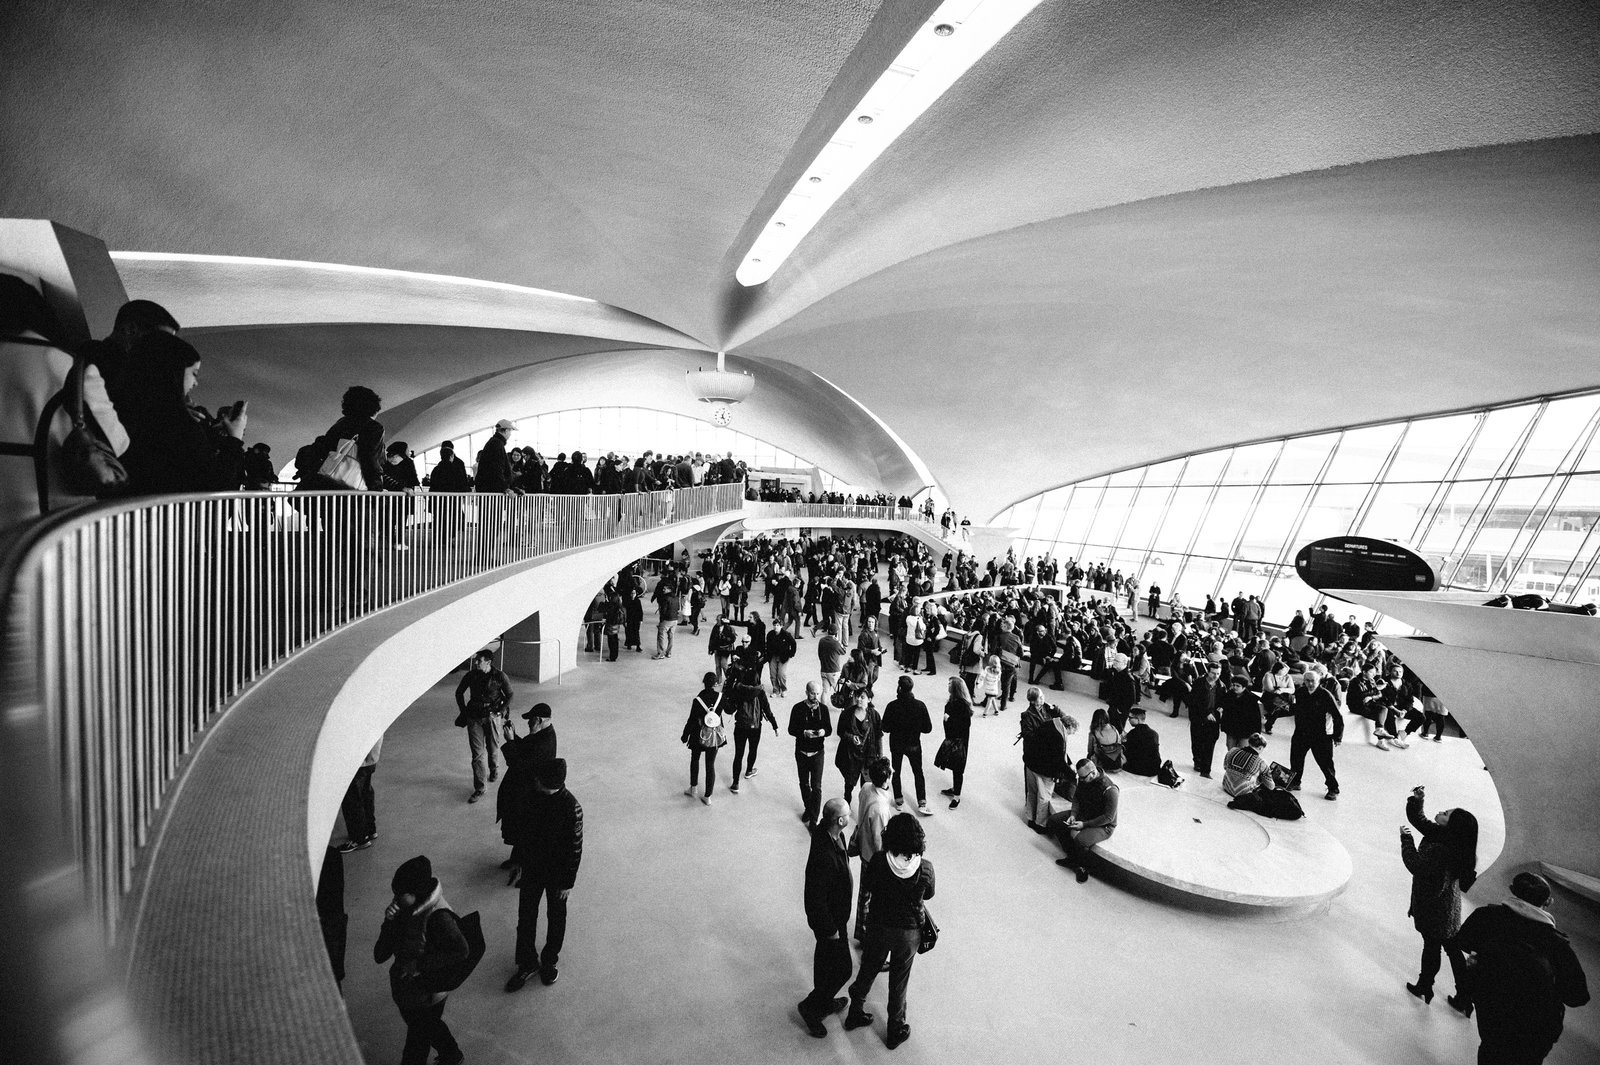 TWA Flight Center by Eero Saarinen  TWA Flight Center by Eero Saarinen by COOL HUNTING